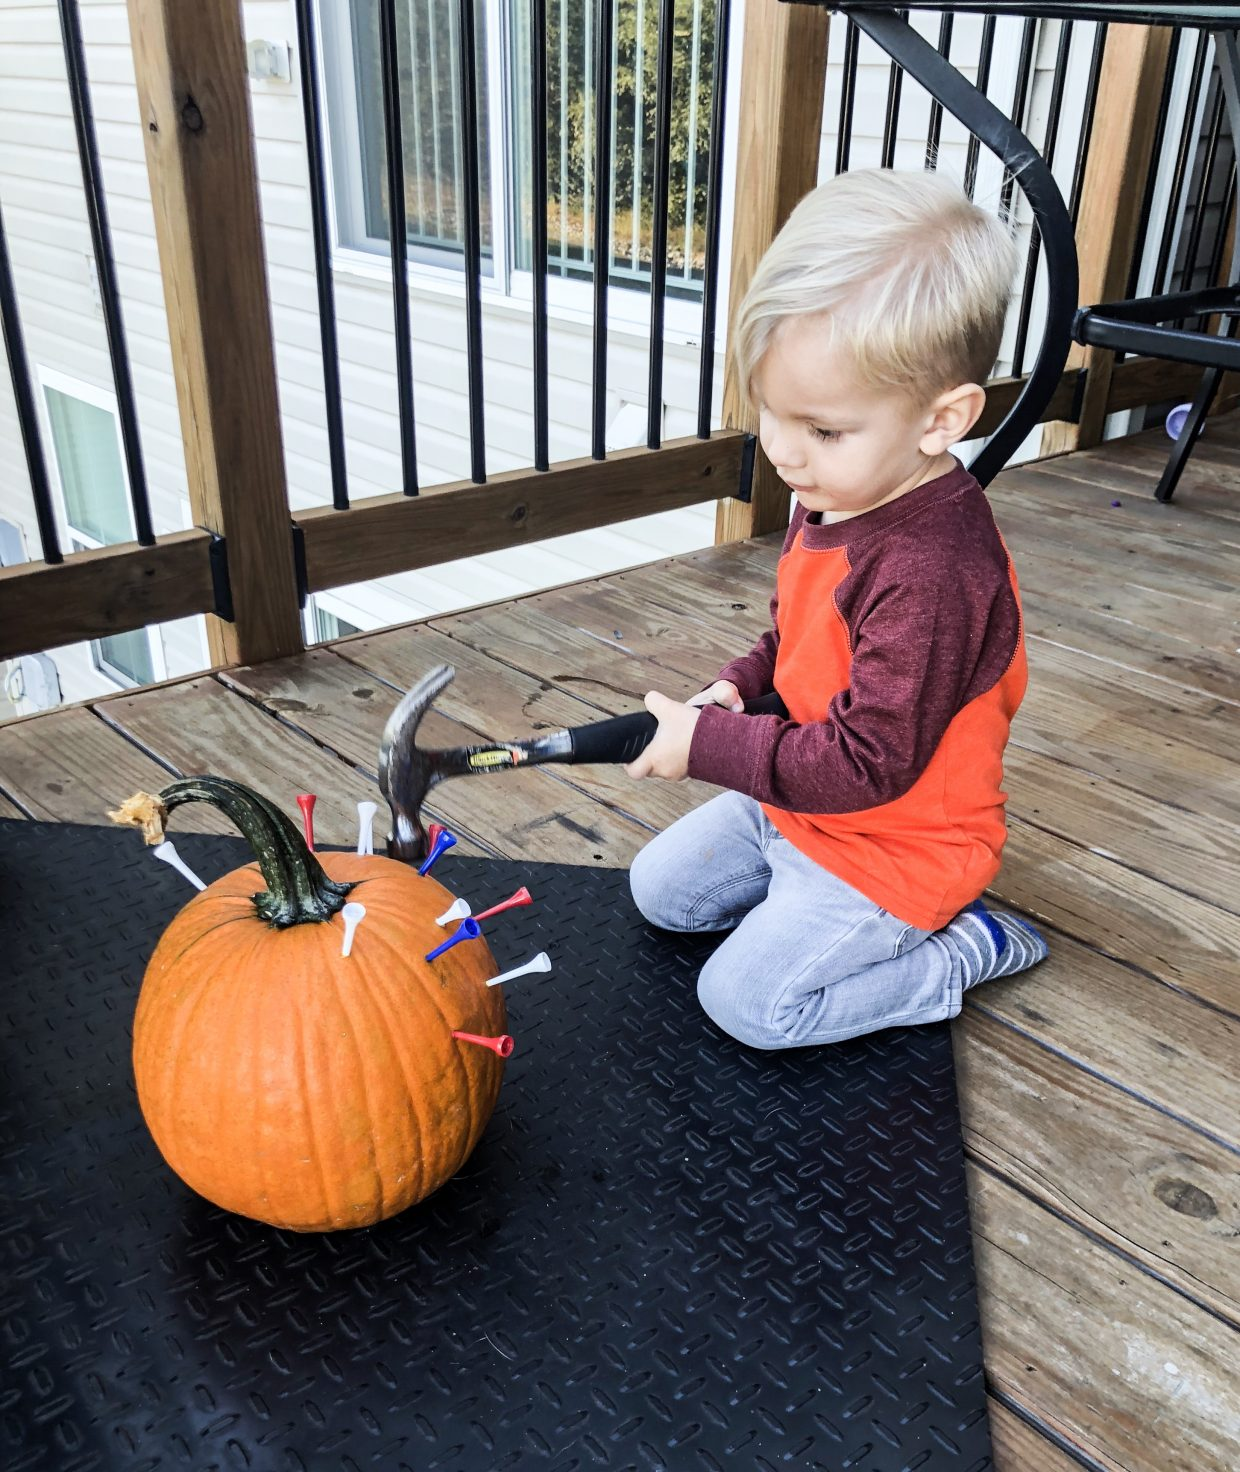 Pumpkin Hammering Activity for Toddlers | Rock It Mama | Do this fun fall activity with your toddler